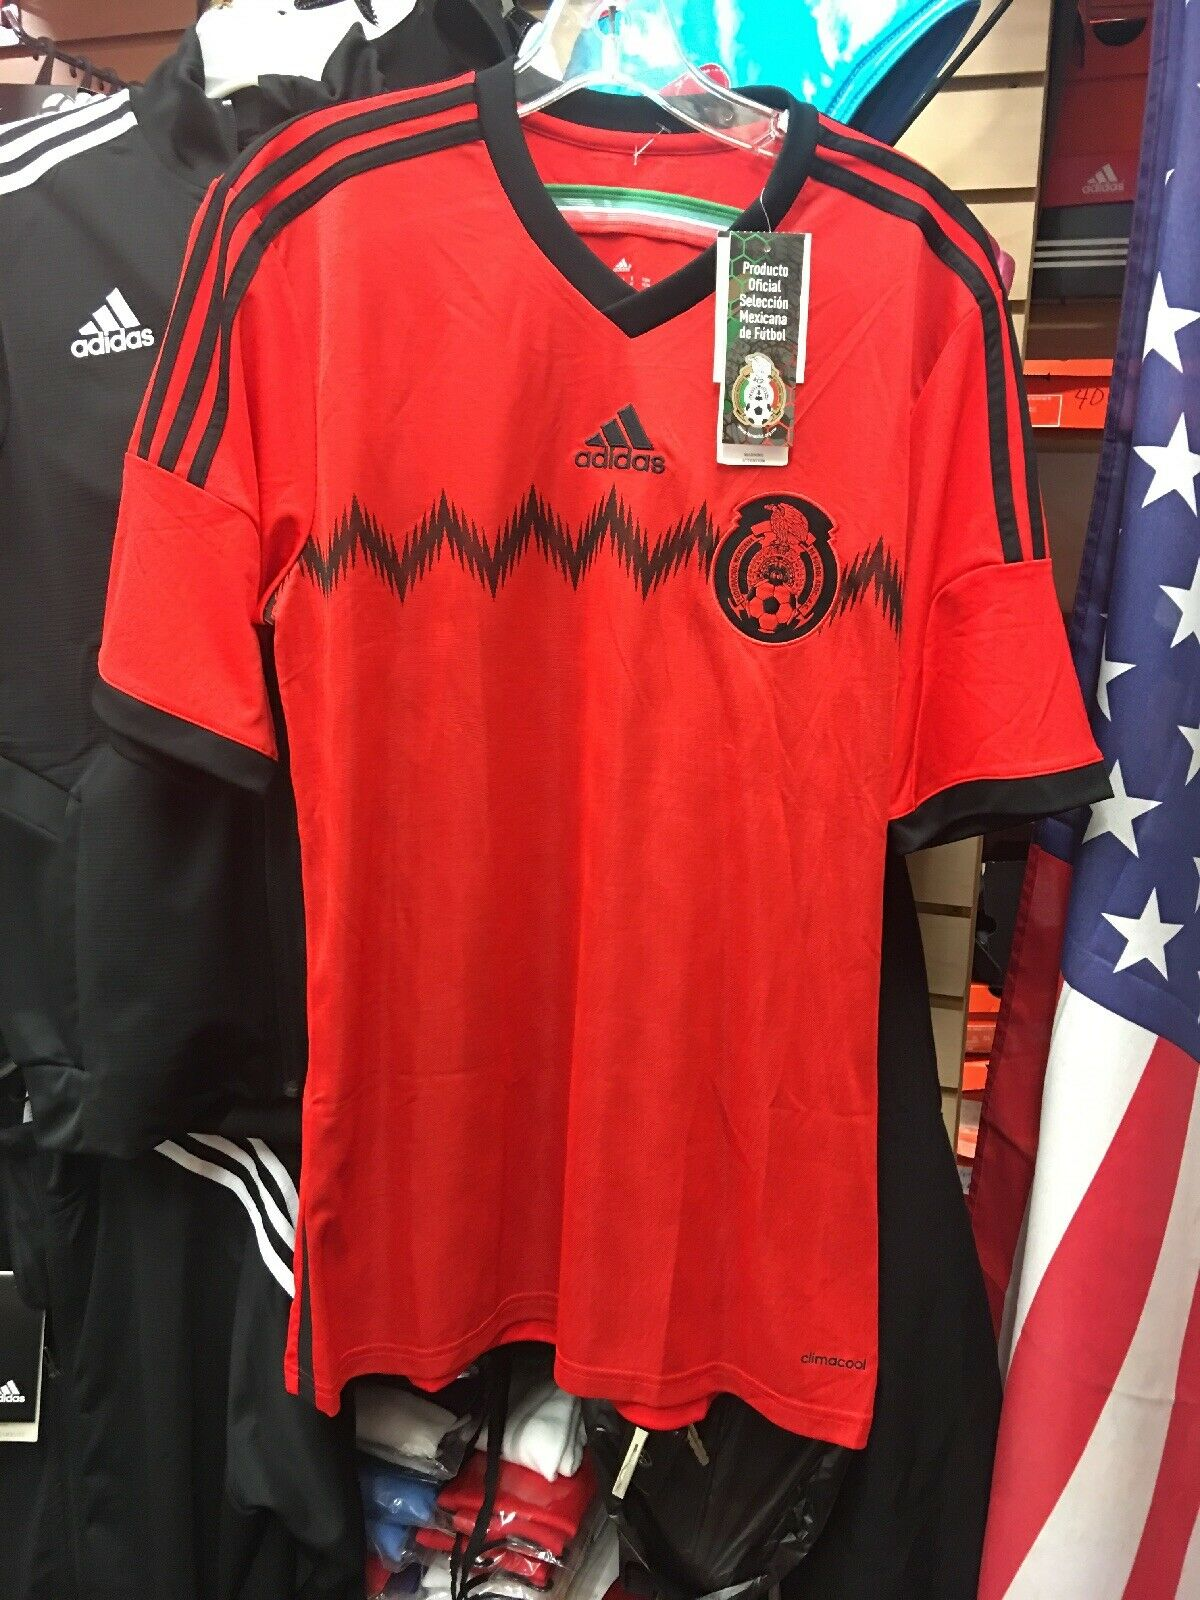 85beddcbe Adidas MEXICO Soccer Jersey Retro 2014 WORLD CUP JerseyMens Size M ...